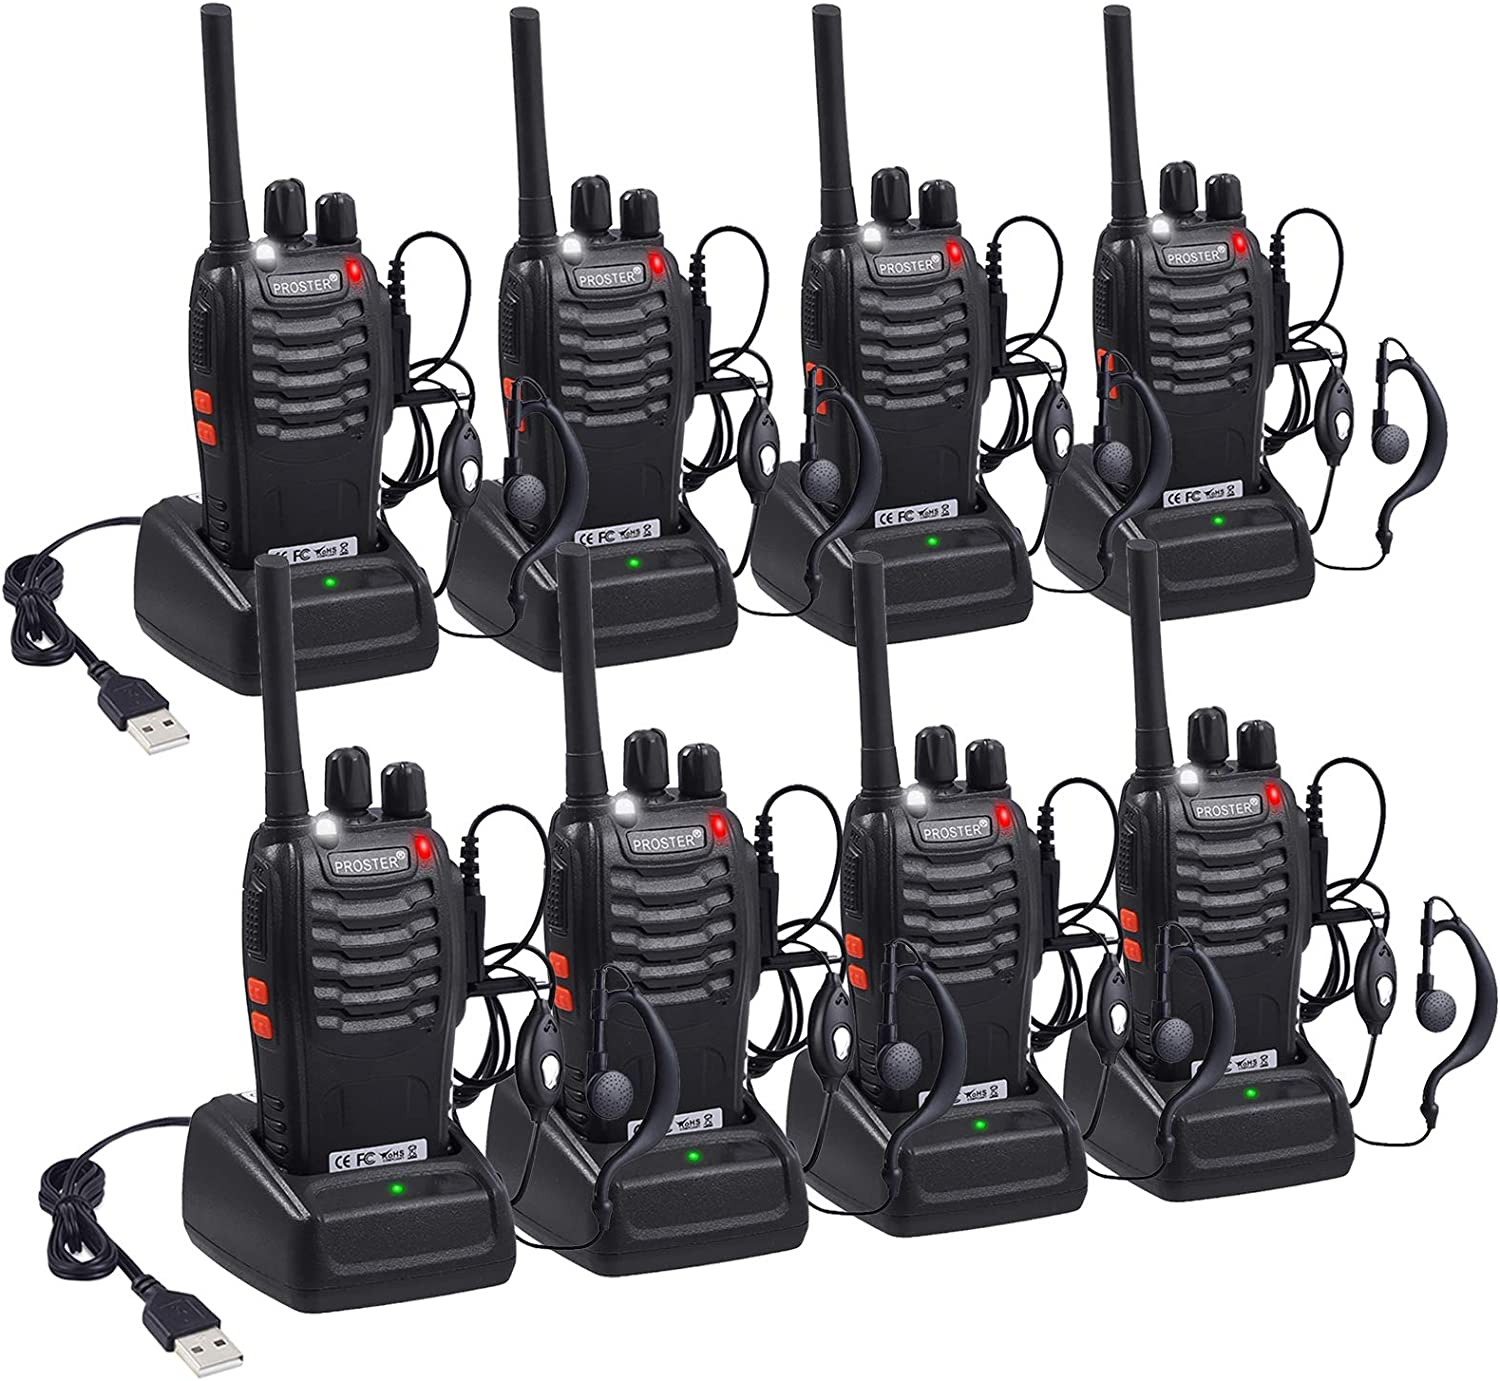 Proster Rechargeable Walkie Talkies Kids 16 Channel Two Way Radios with USB Charger Earpiece Mic Walky Talky 2-Way Radio Transceiver Long Range 4 Pair